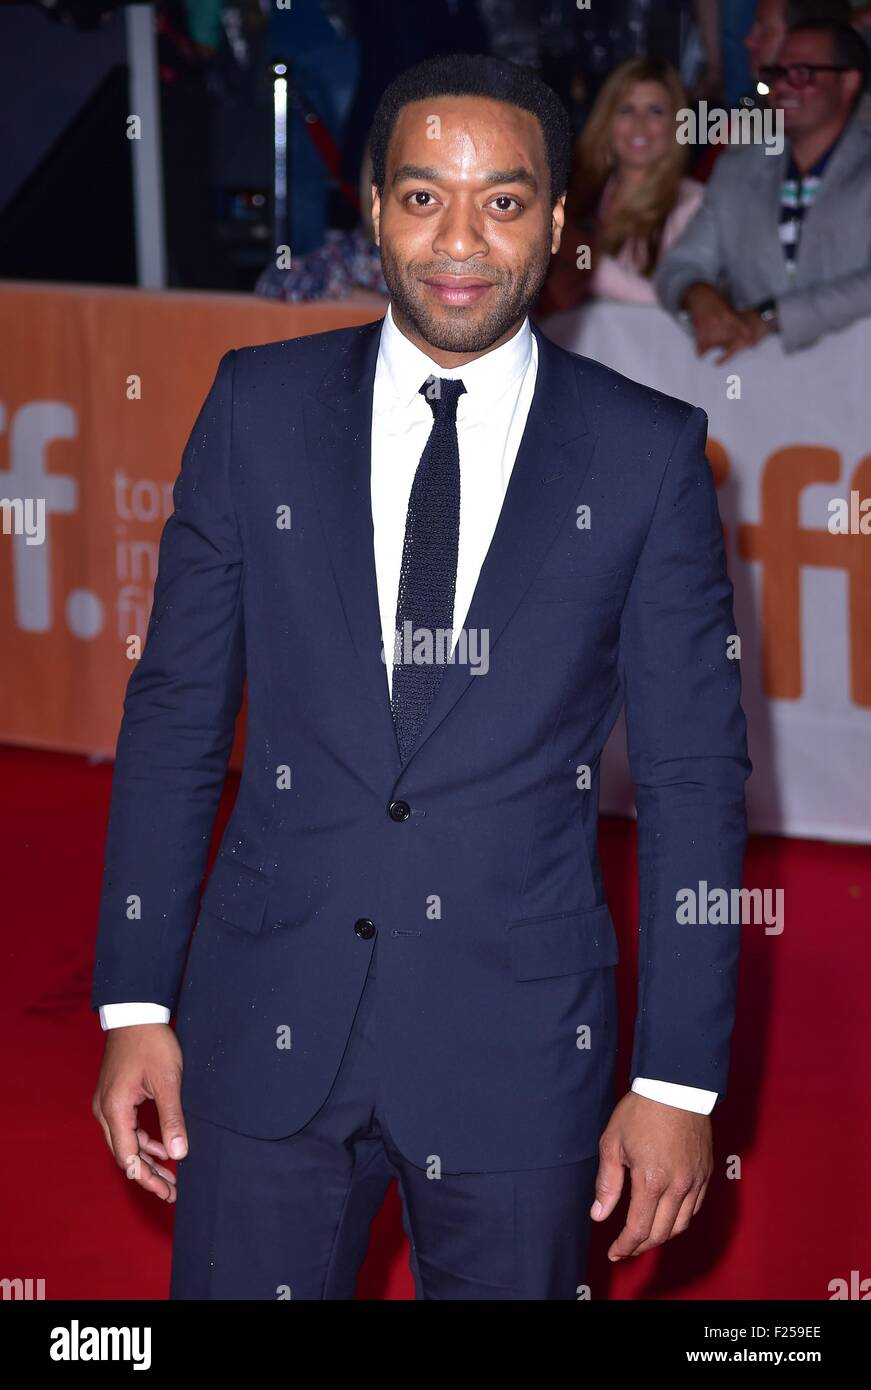 Toronto, ON. 11th Sep, 2015. Chiwetel Ejiofor at arrivals for THE MARTIAN Premiere at Toronto International Film - Stock Image